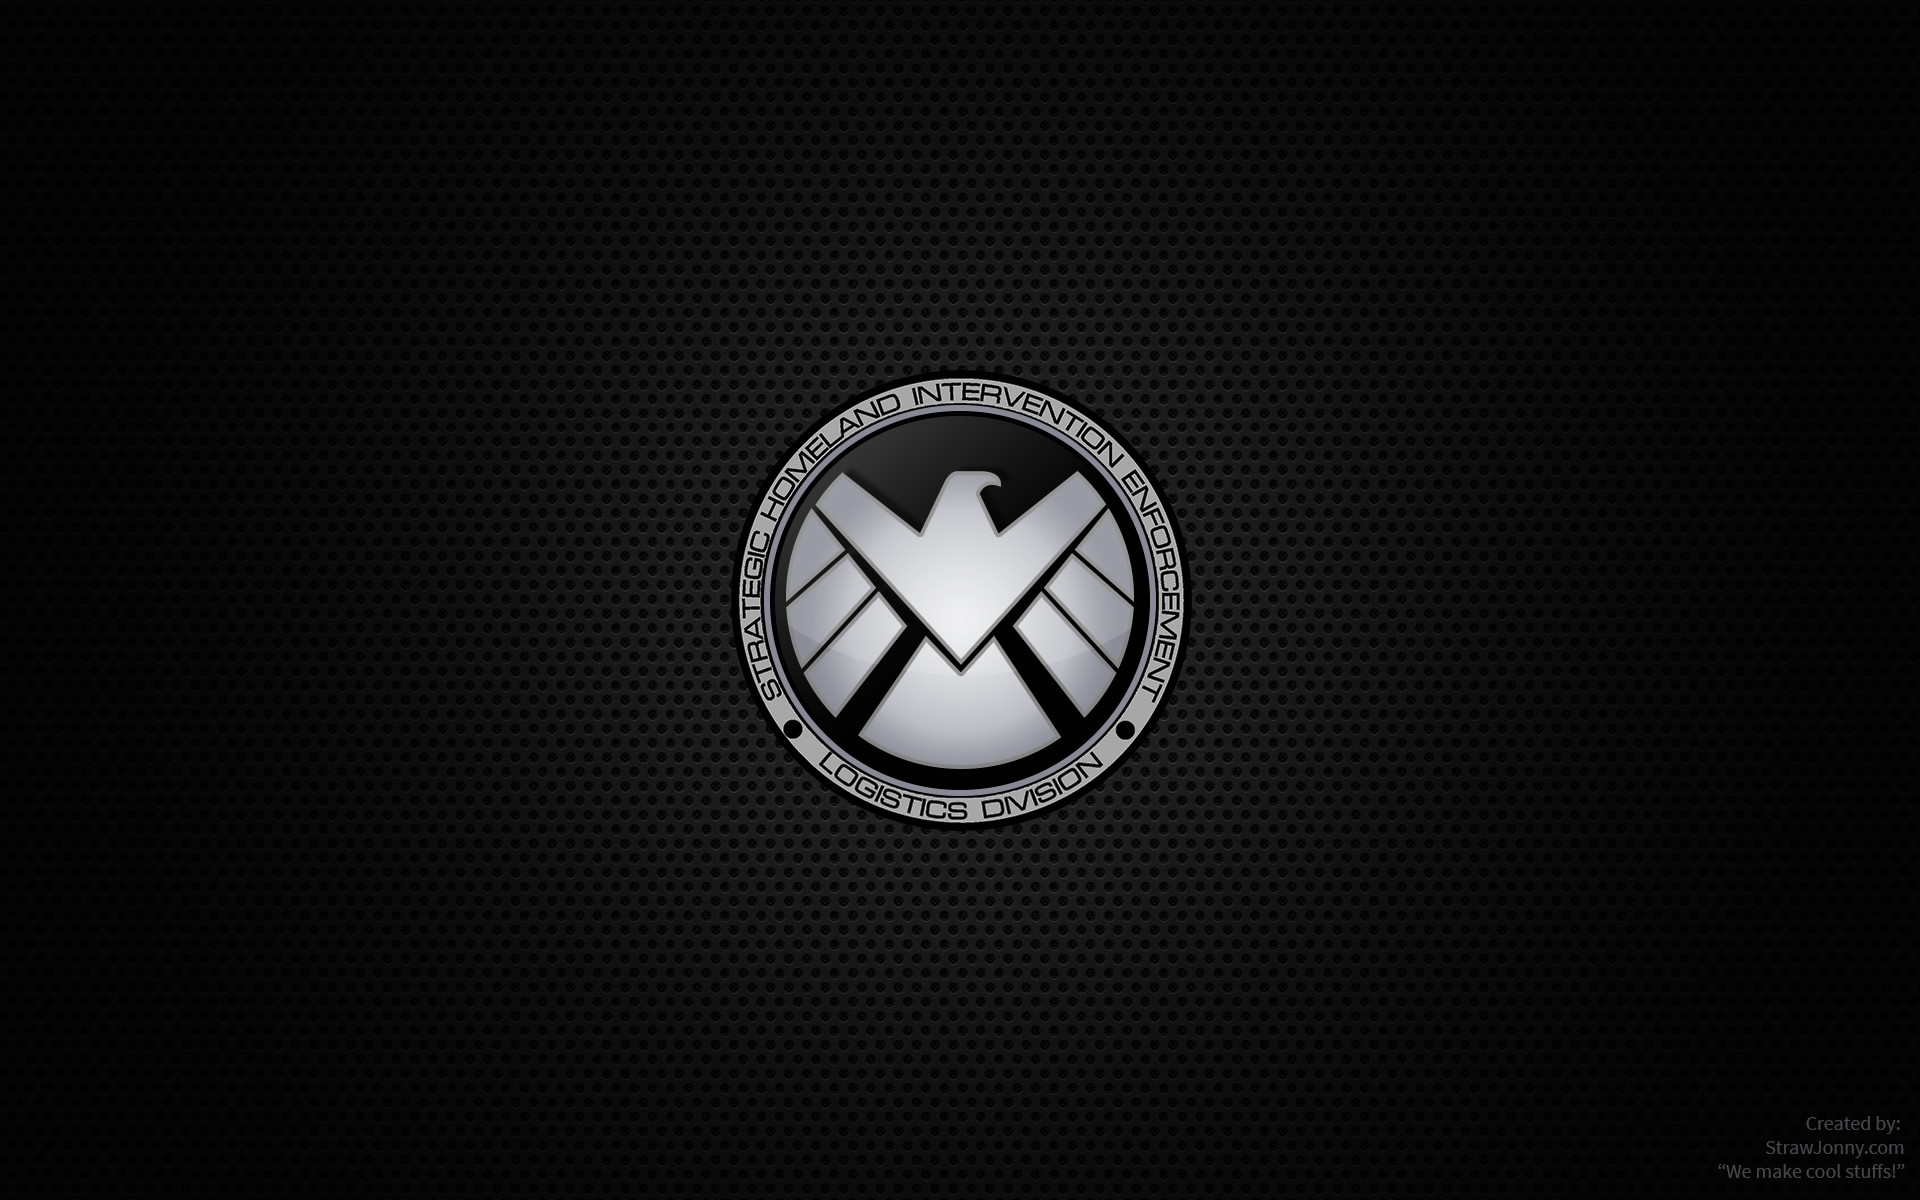 Agents Of Shield Wallpaper Images & Pictures – Becuo